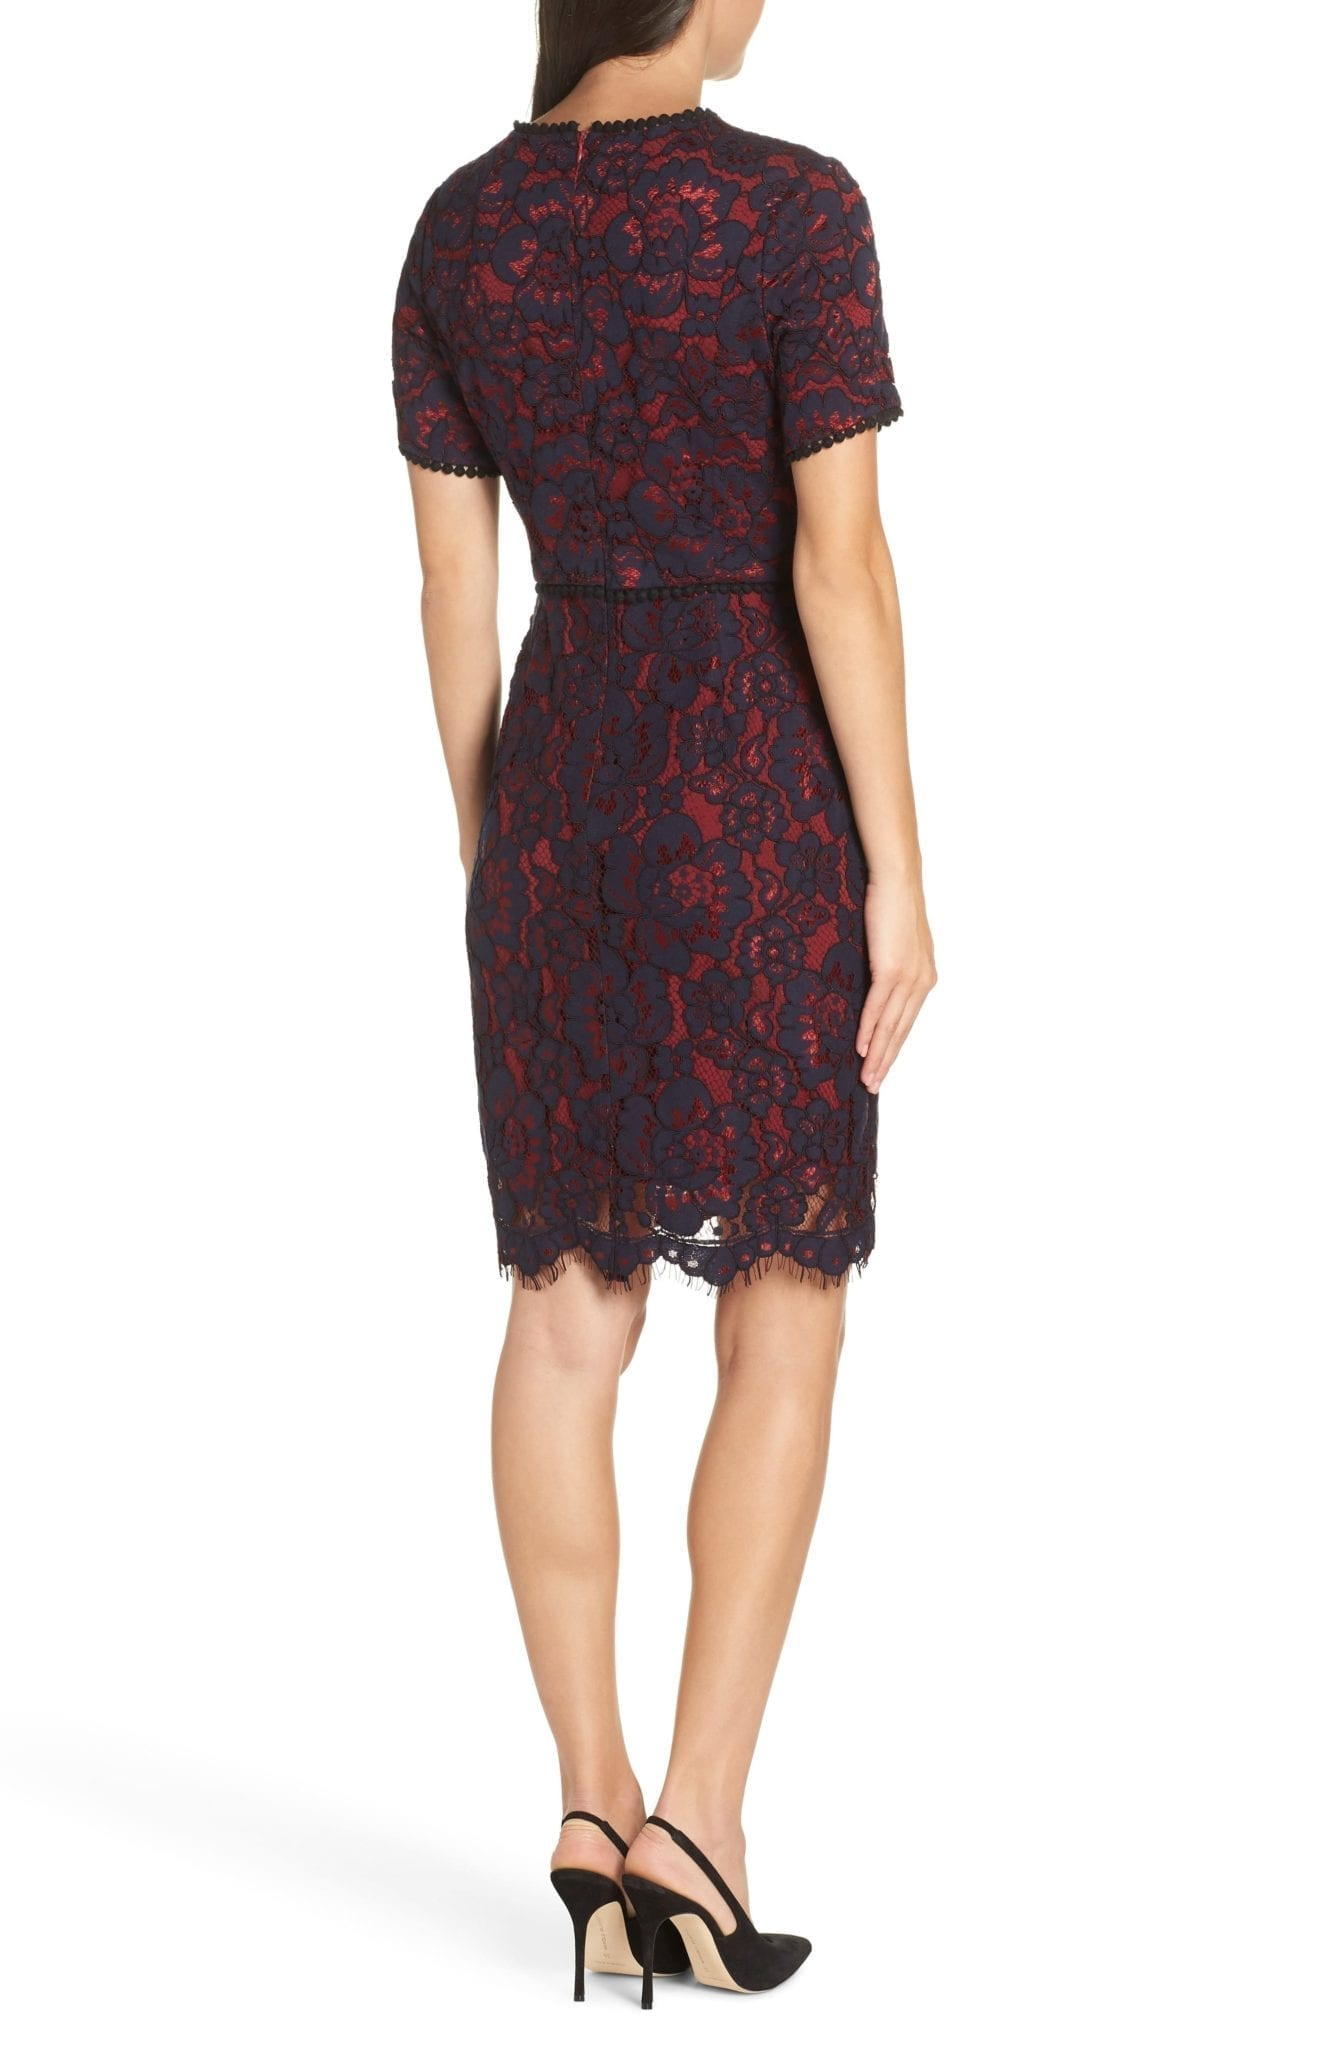 charles henry lace sheath navy wine dress we select